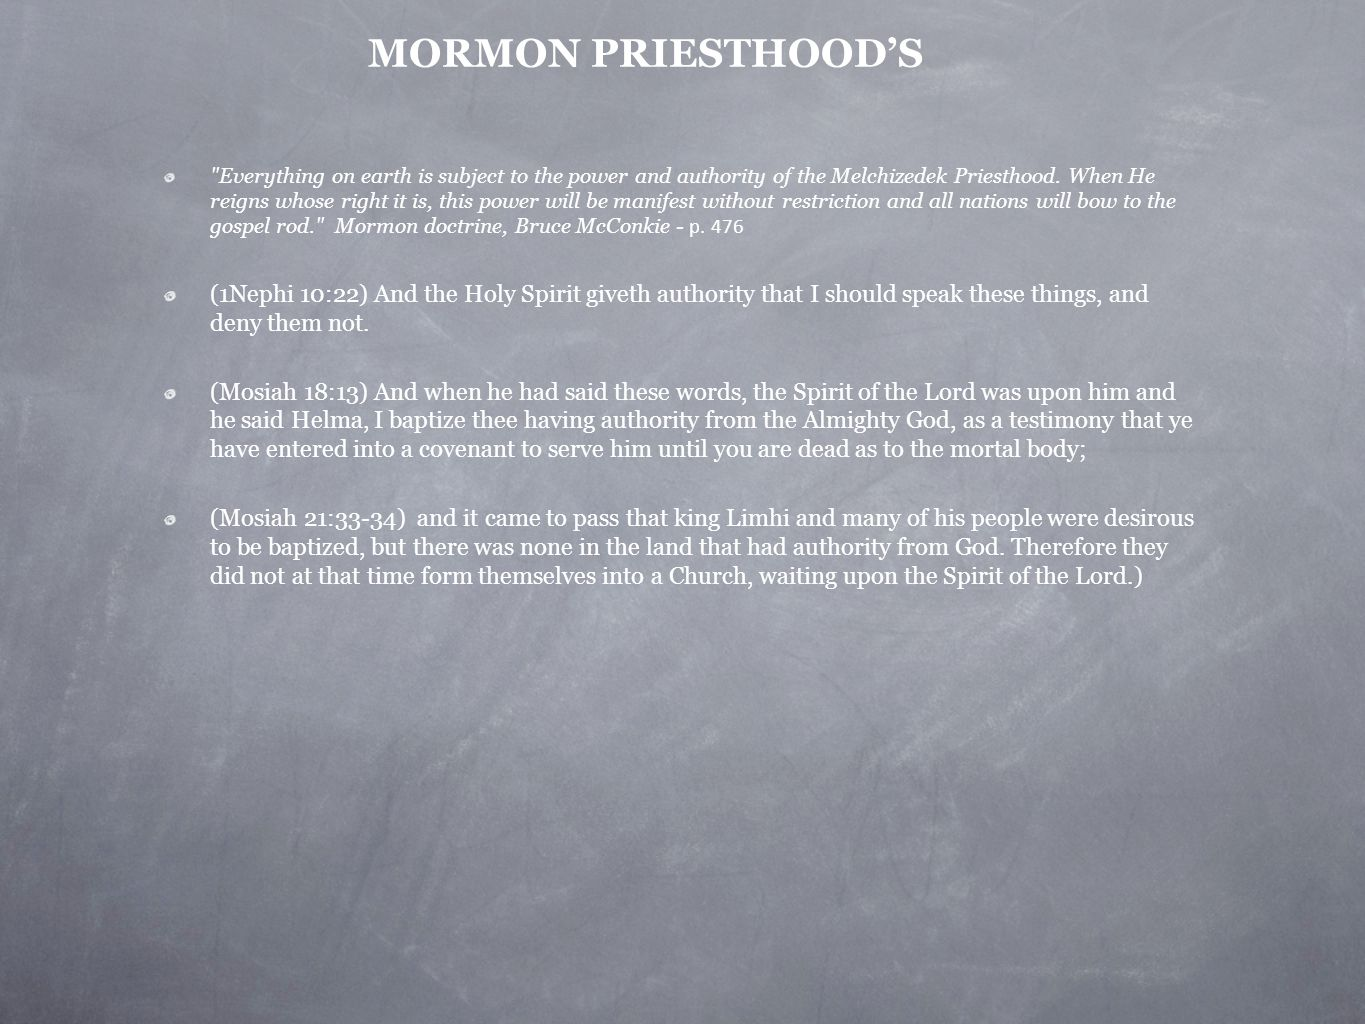 MORMON PRIESTHOOD'S Everything on earth is subject to the power and authority of the Melchizedek Priesthood.